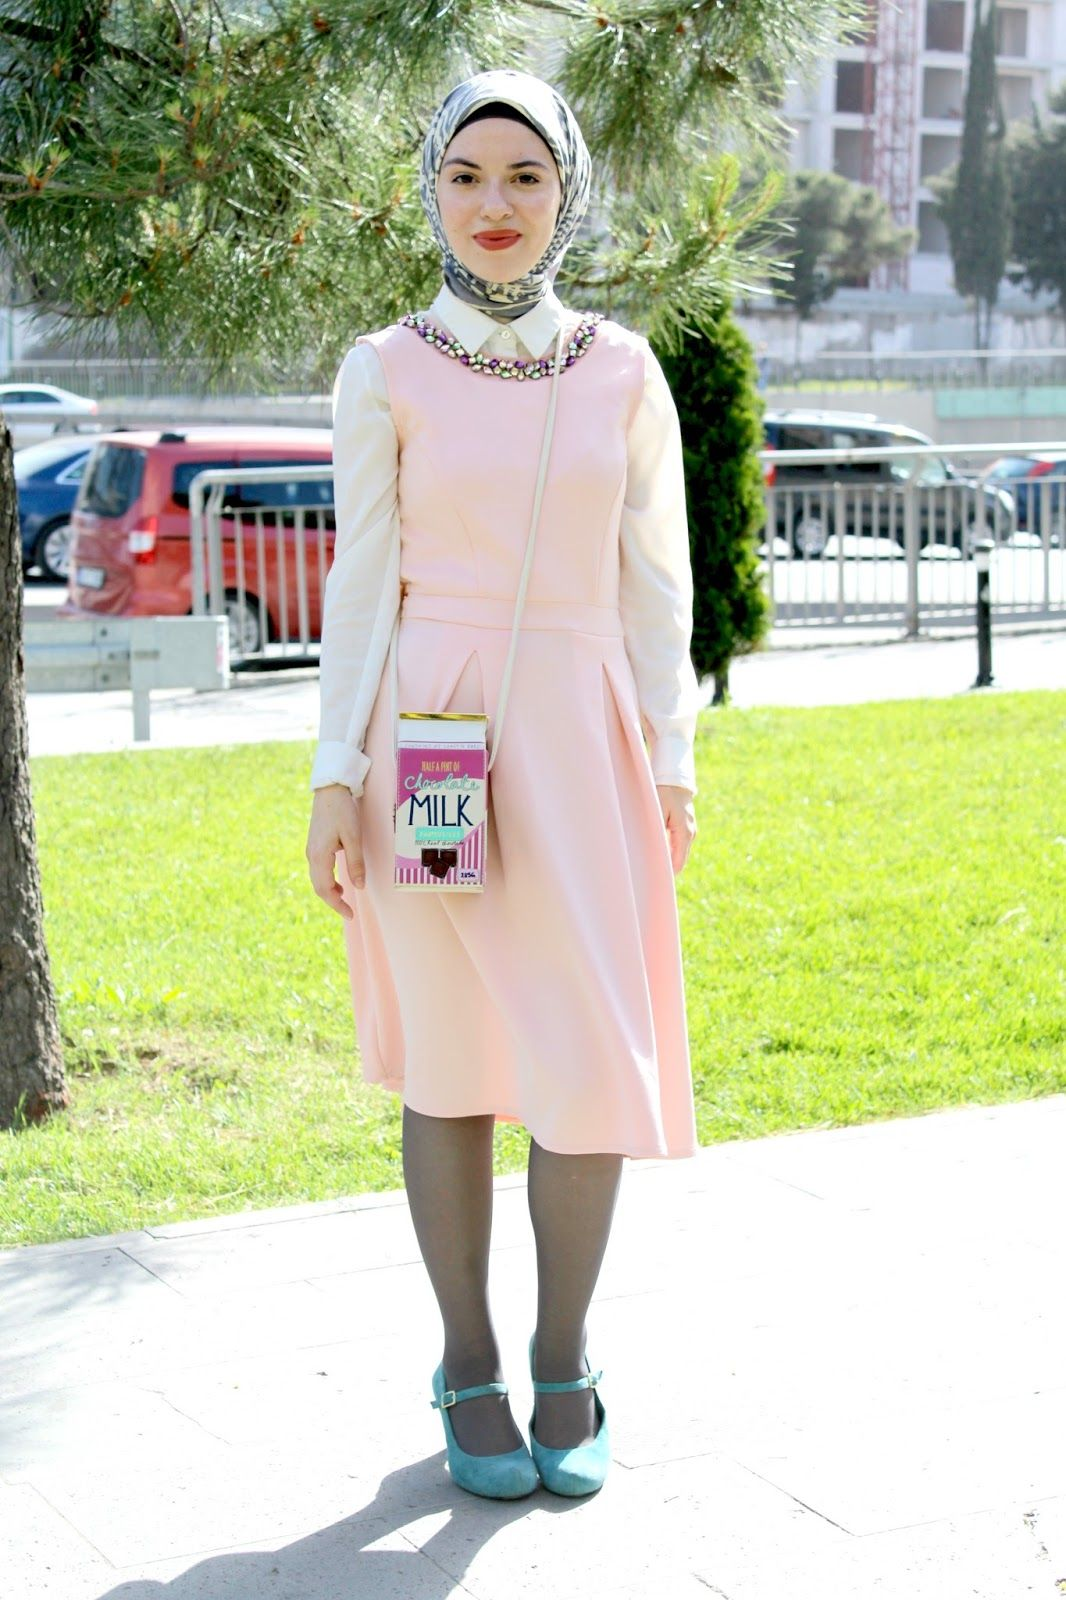 Vintagonista vintage Blog: outfit featuring a Mendel's theme with a pink  midi dress, teal